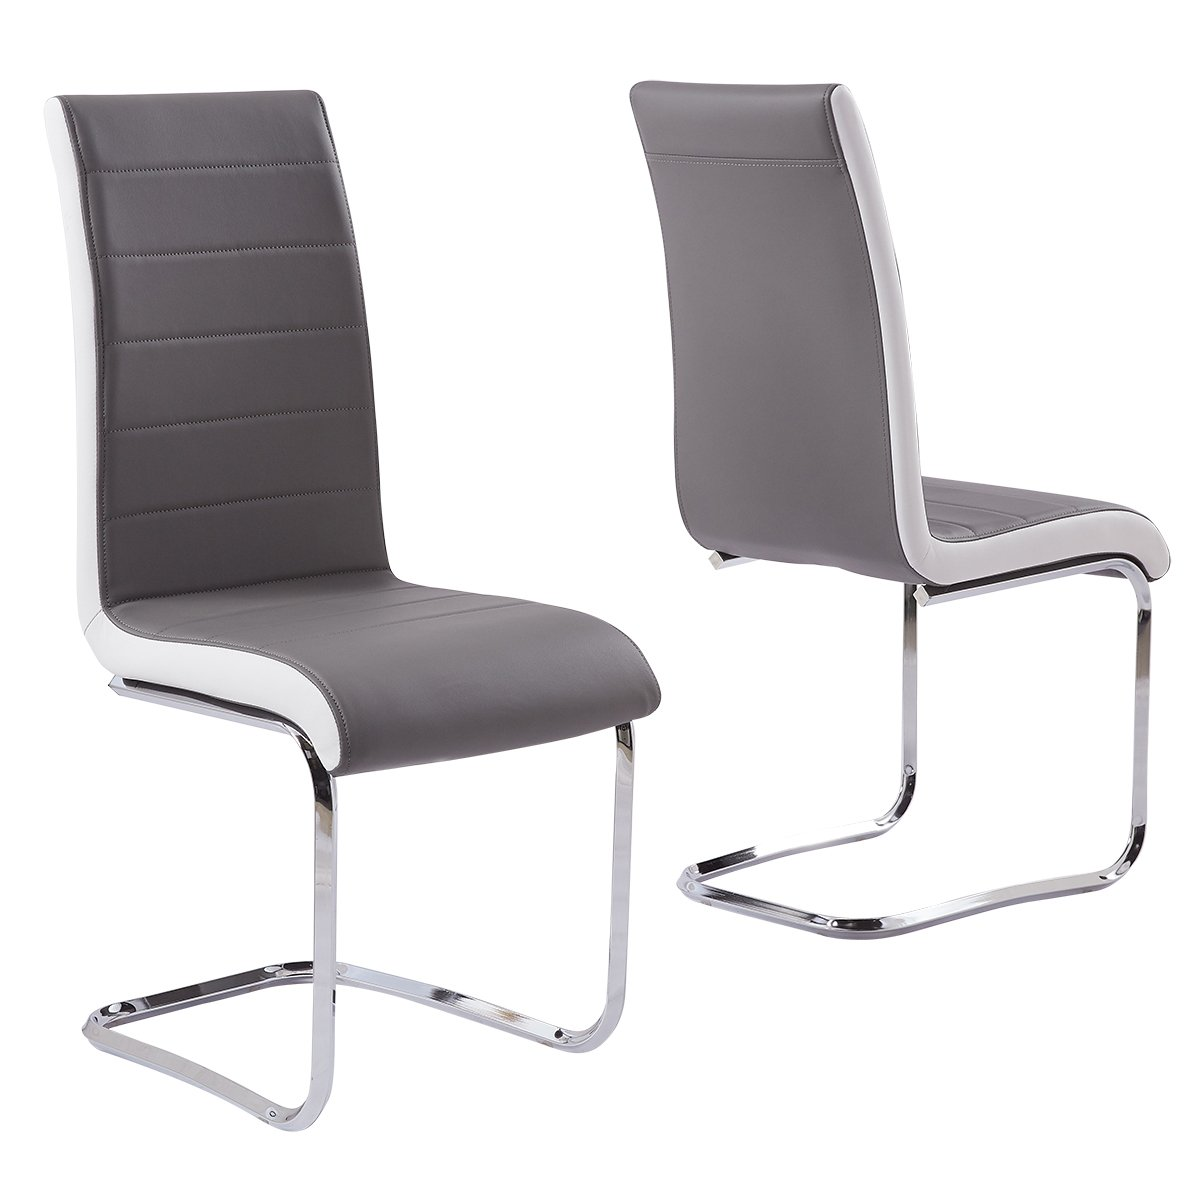 2X Premium Grey Leather Dining Chairs Padded High Back and Solid Chrome Legs with White Trim Side Contemporary Retro Look Kitchen Room Office Meeting Room Dining Table Seater GIZZA